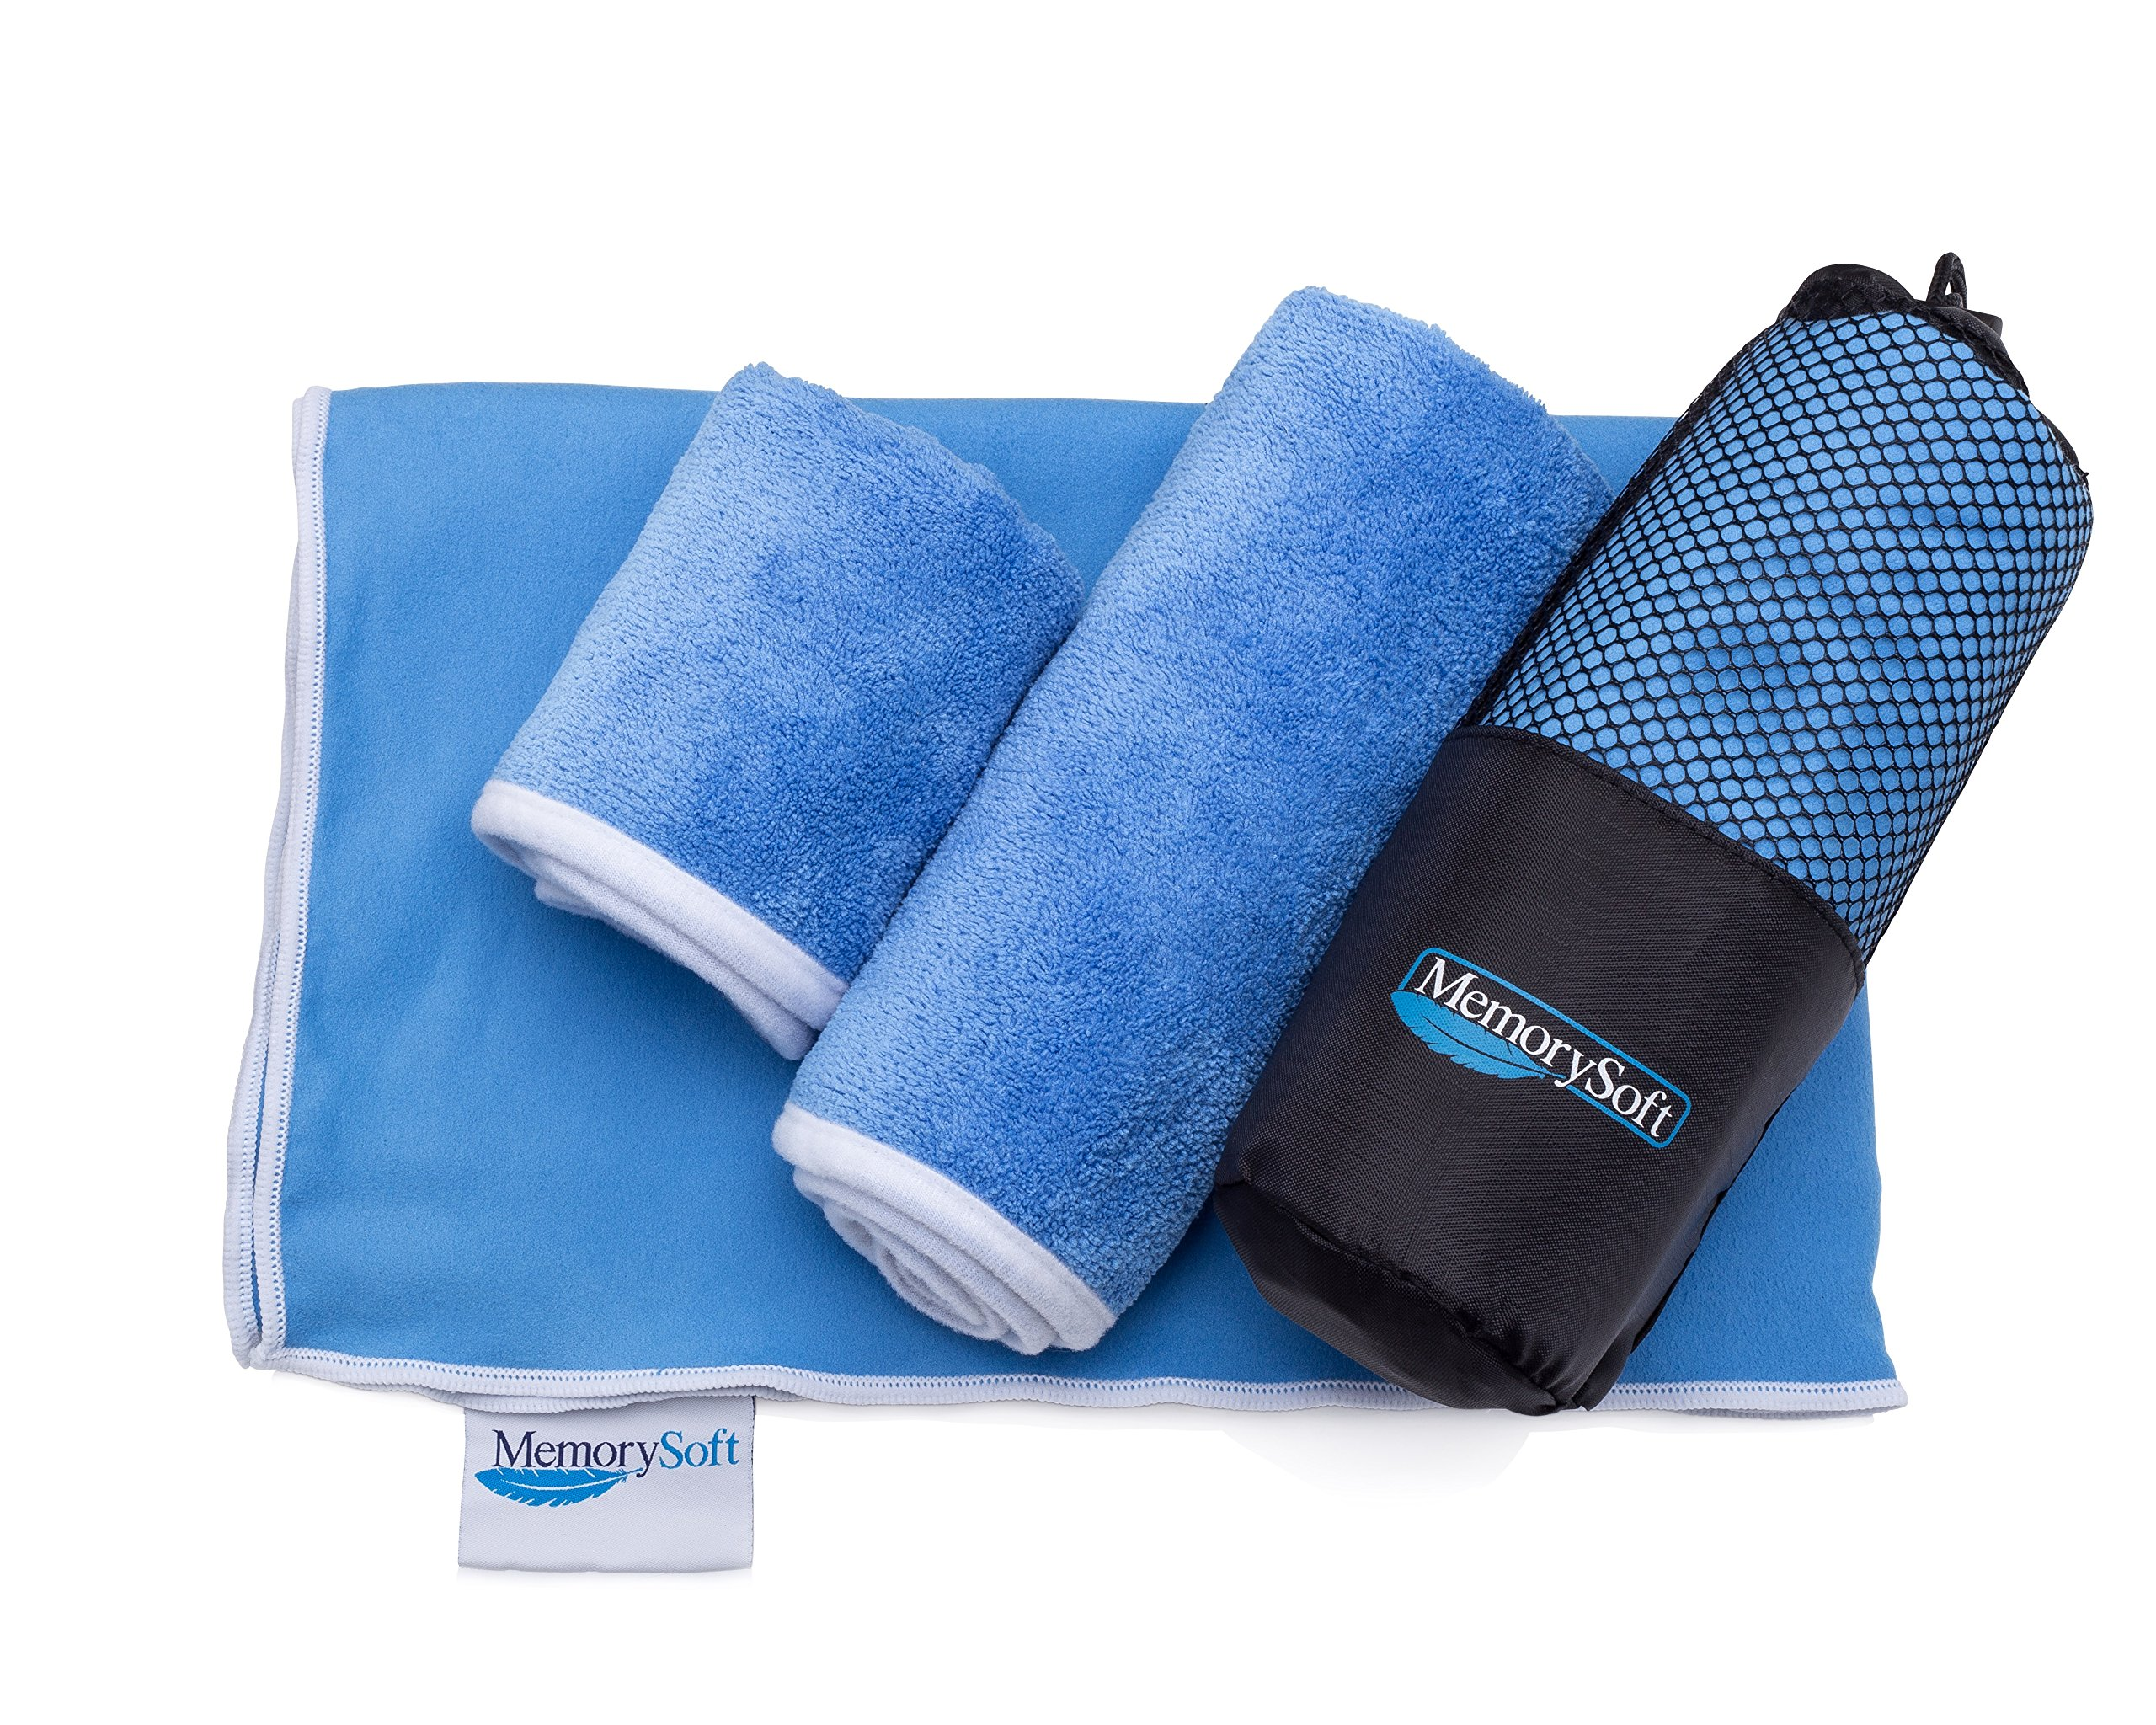 MemorySoft NEW Luxury Microfiber On-the-go Quick Dry Towel By Bath Size - Includes 2 Freebie Towels & Case - Compact for Travel, Gym, Camping, and the Beach